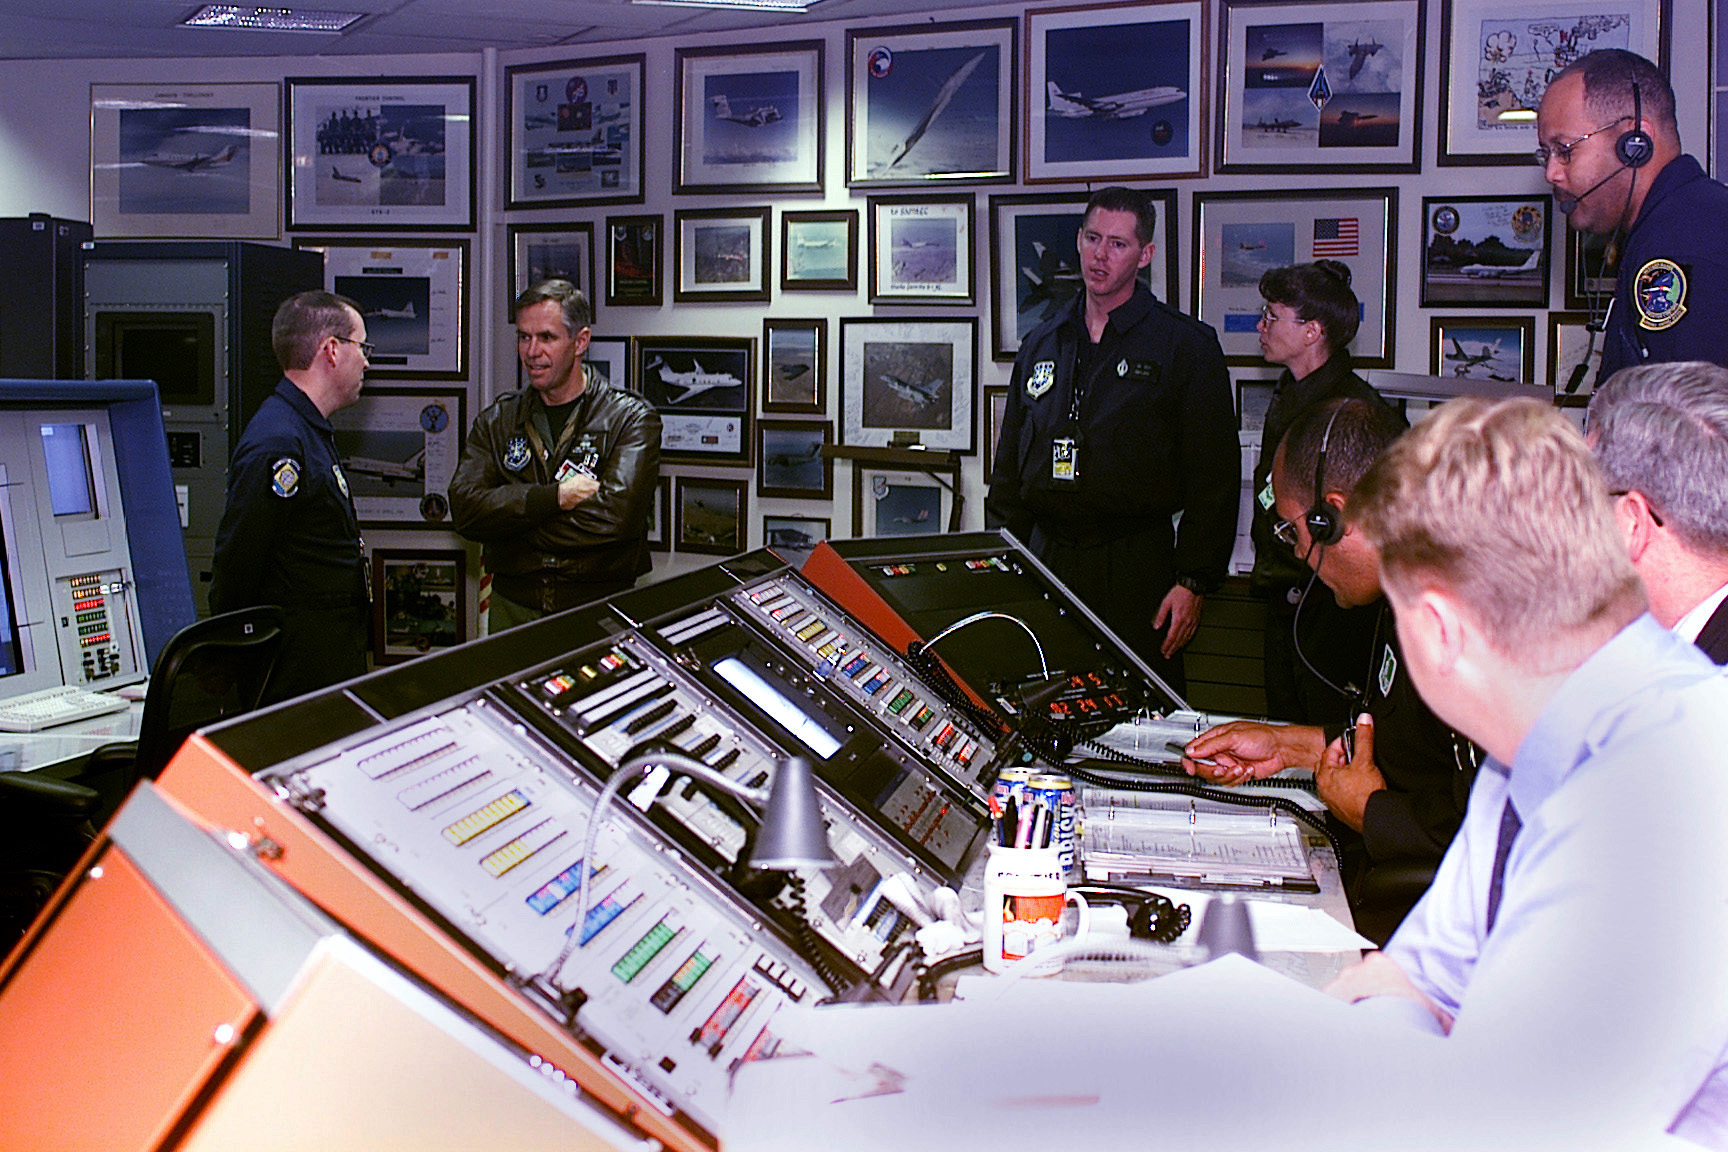 Members of the 30th Range Squadron, Vandenberg Air Force Base, California, brief US Air Force Brigadier General Gary R. Dylewski on an upcoming Minuteman III Launch. The Airspace and Offshore Management flight team showed BGEN Dylewski how they ensure that aircraft, trains and other offshore vehicles are at a safe distance before approving a launch